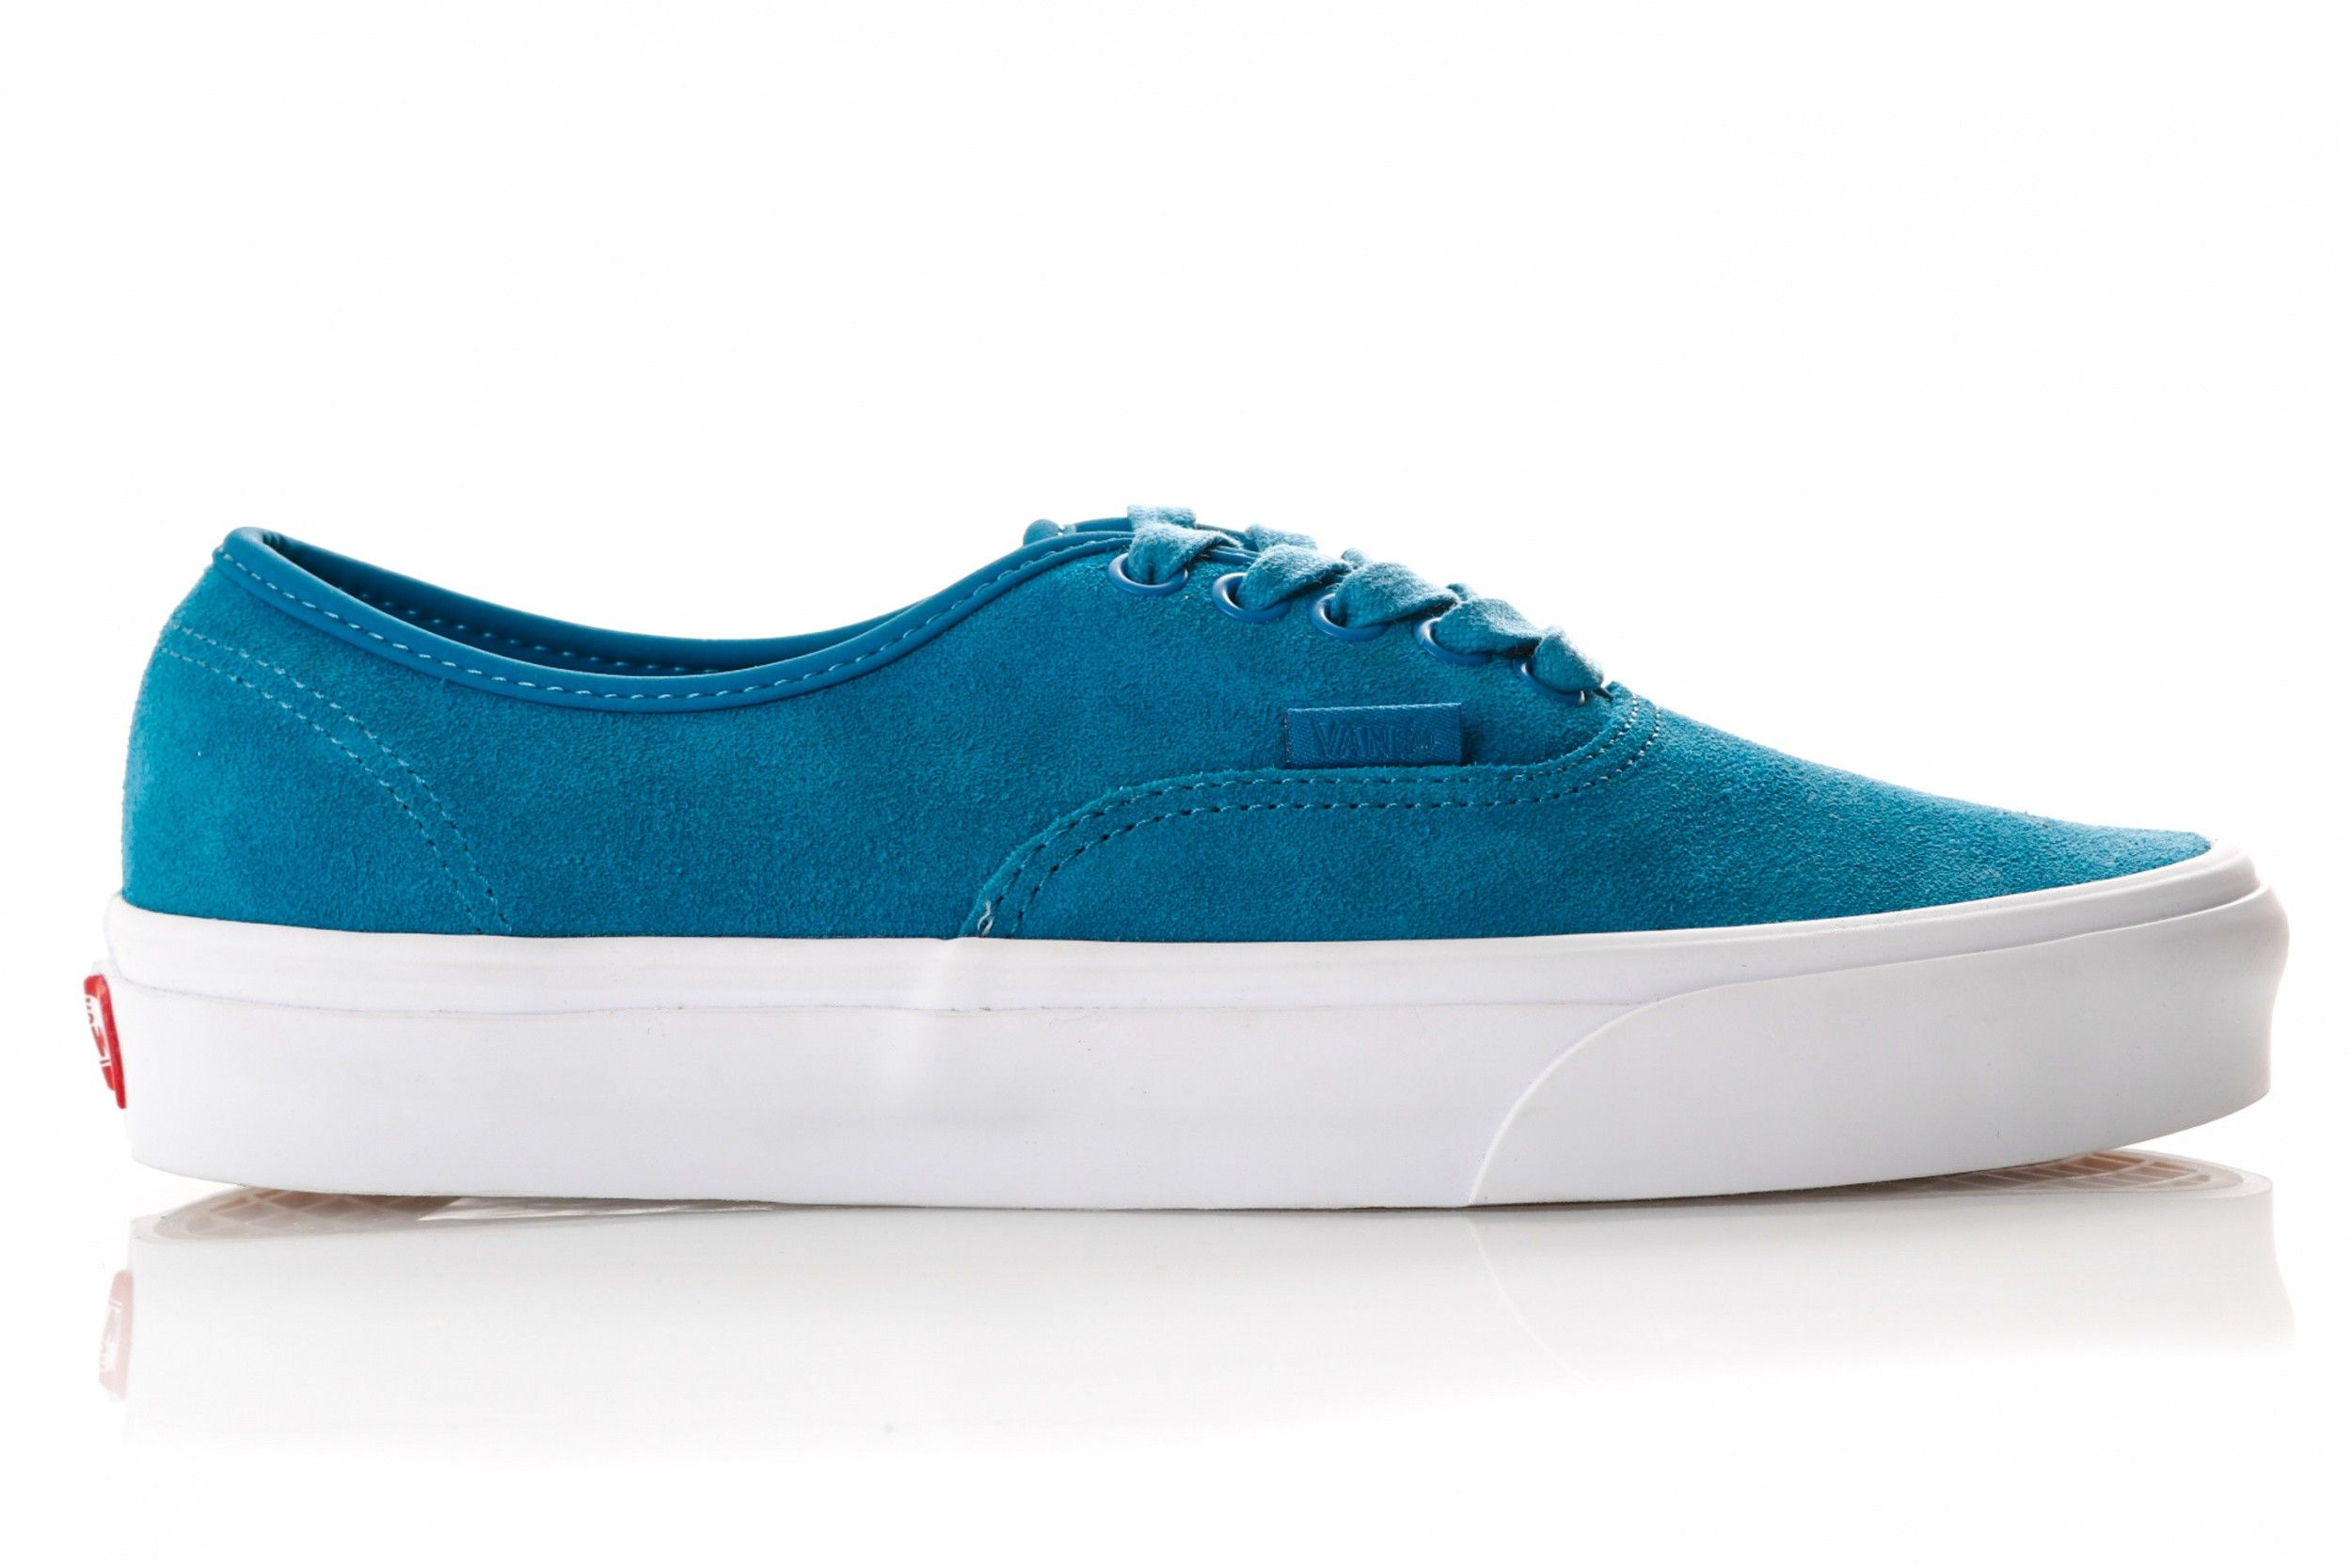 Afbeelding van Vans Ua Authentic Vn0A38Emvkd Sneakers (Soft Suede) Blue Sapphire/True White